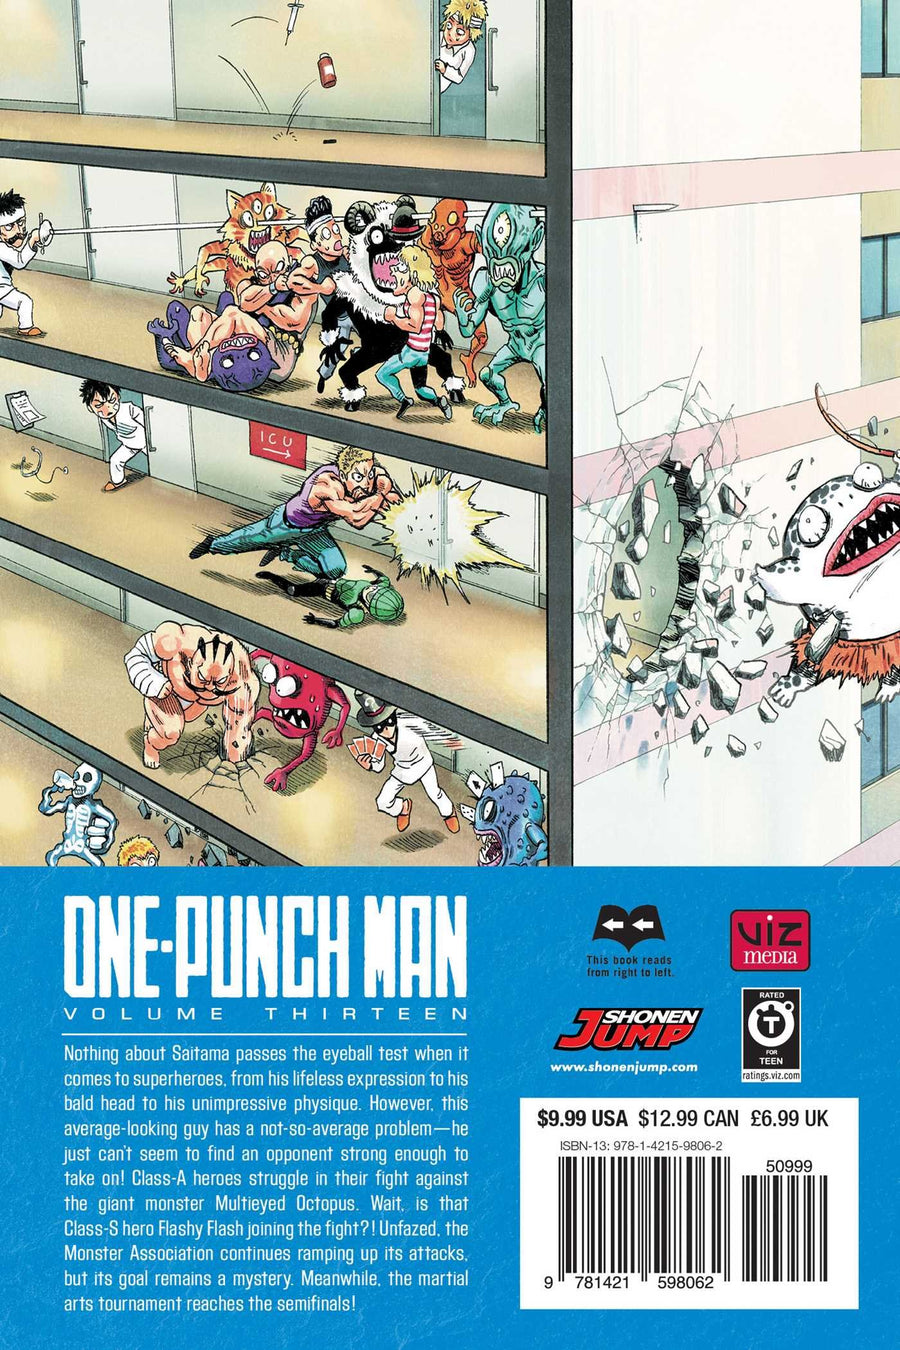 One Punch Man Volume 13